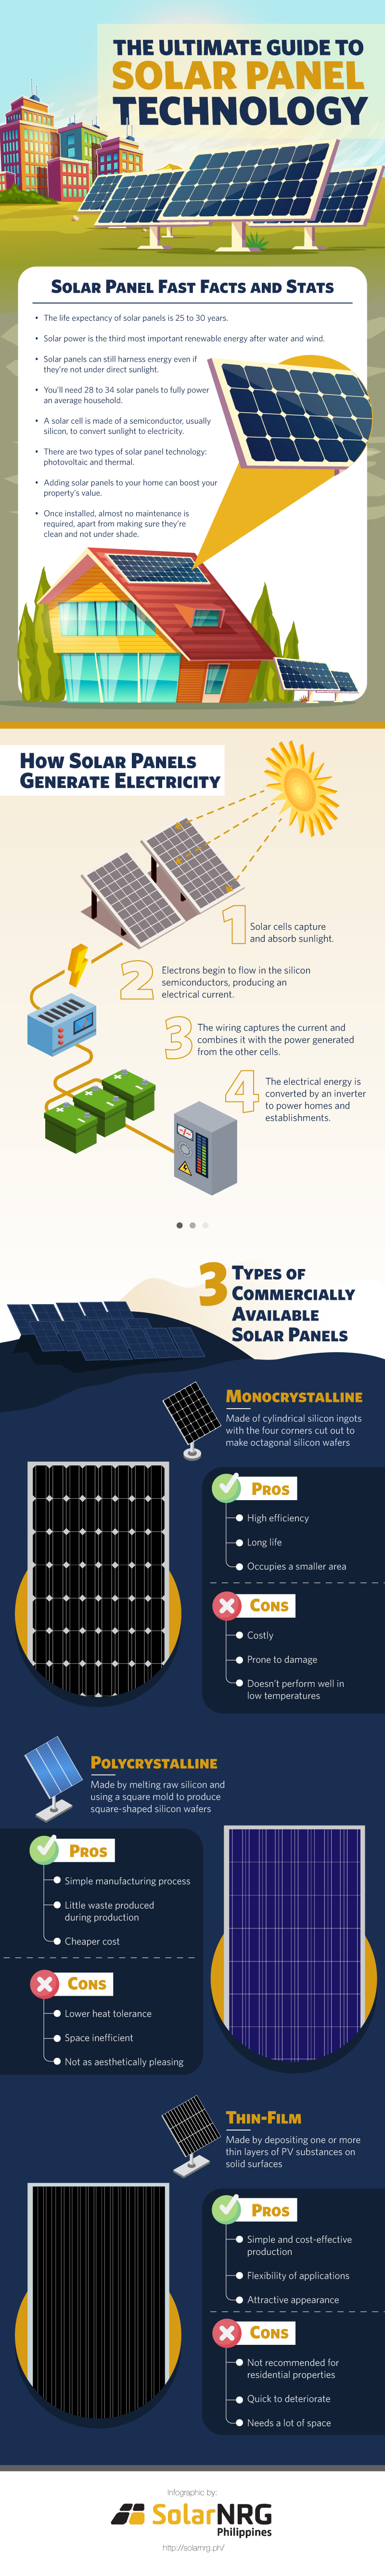 Ultimate Guide to Solar Panel Technology